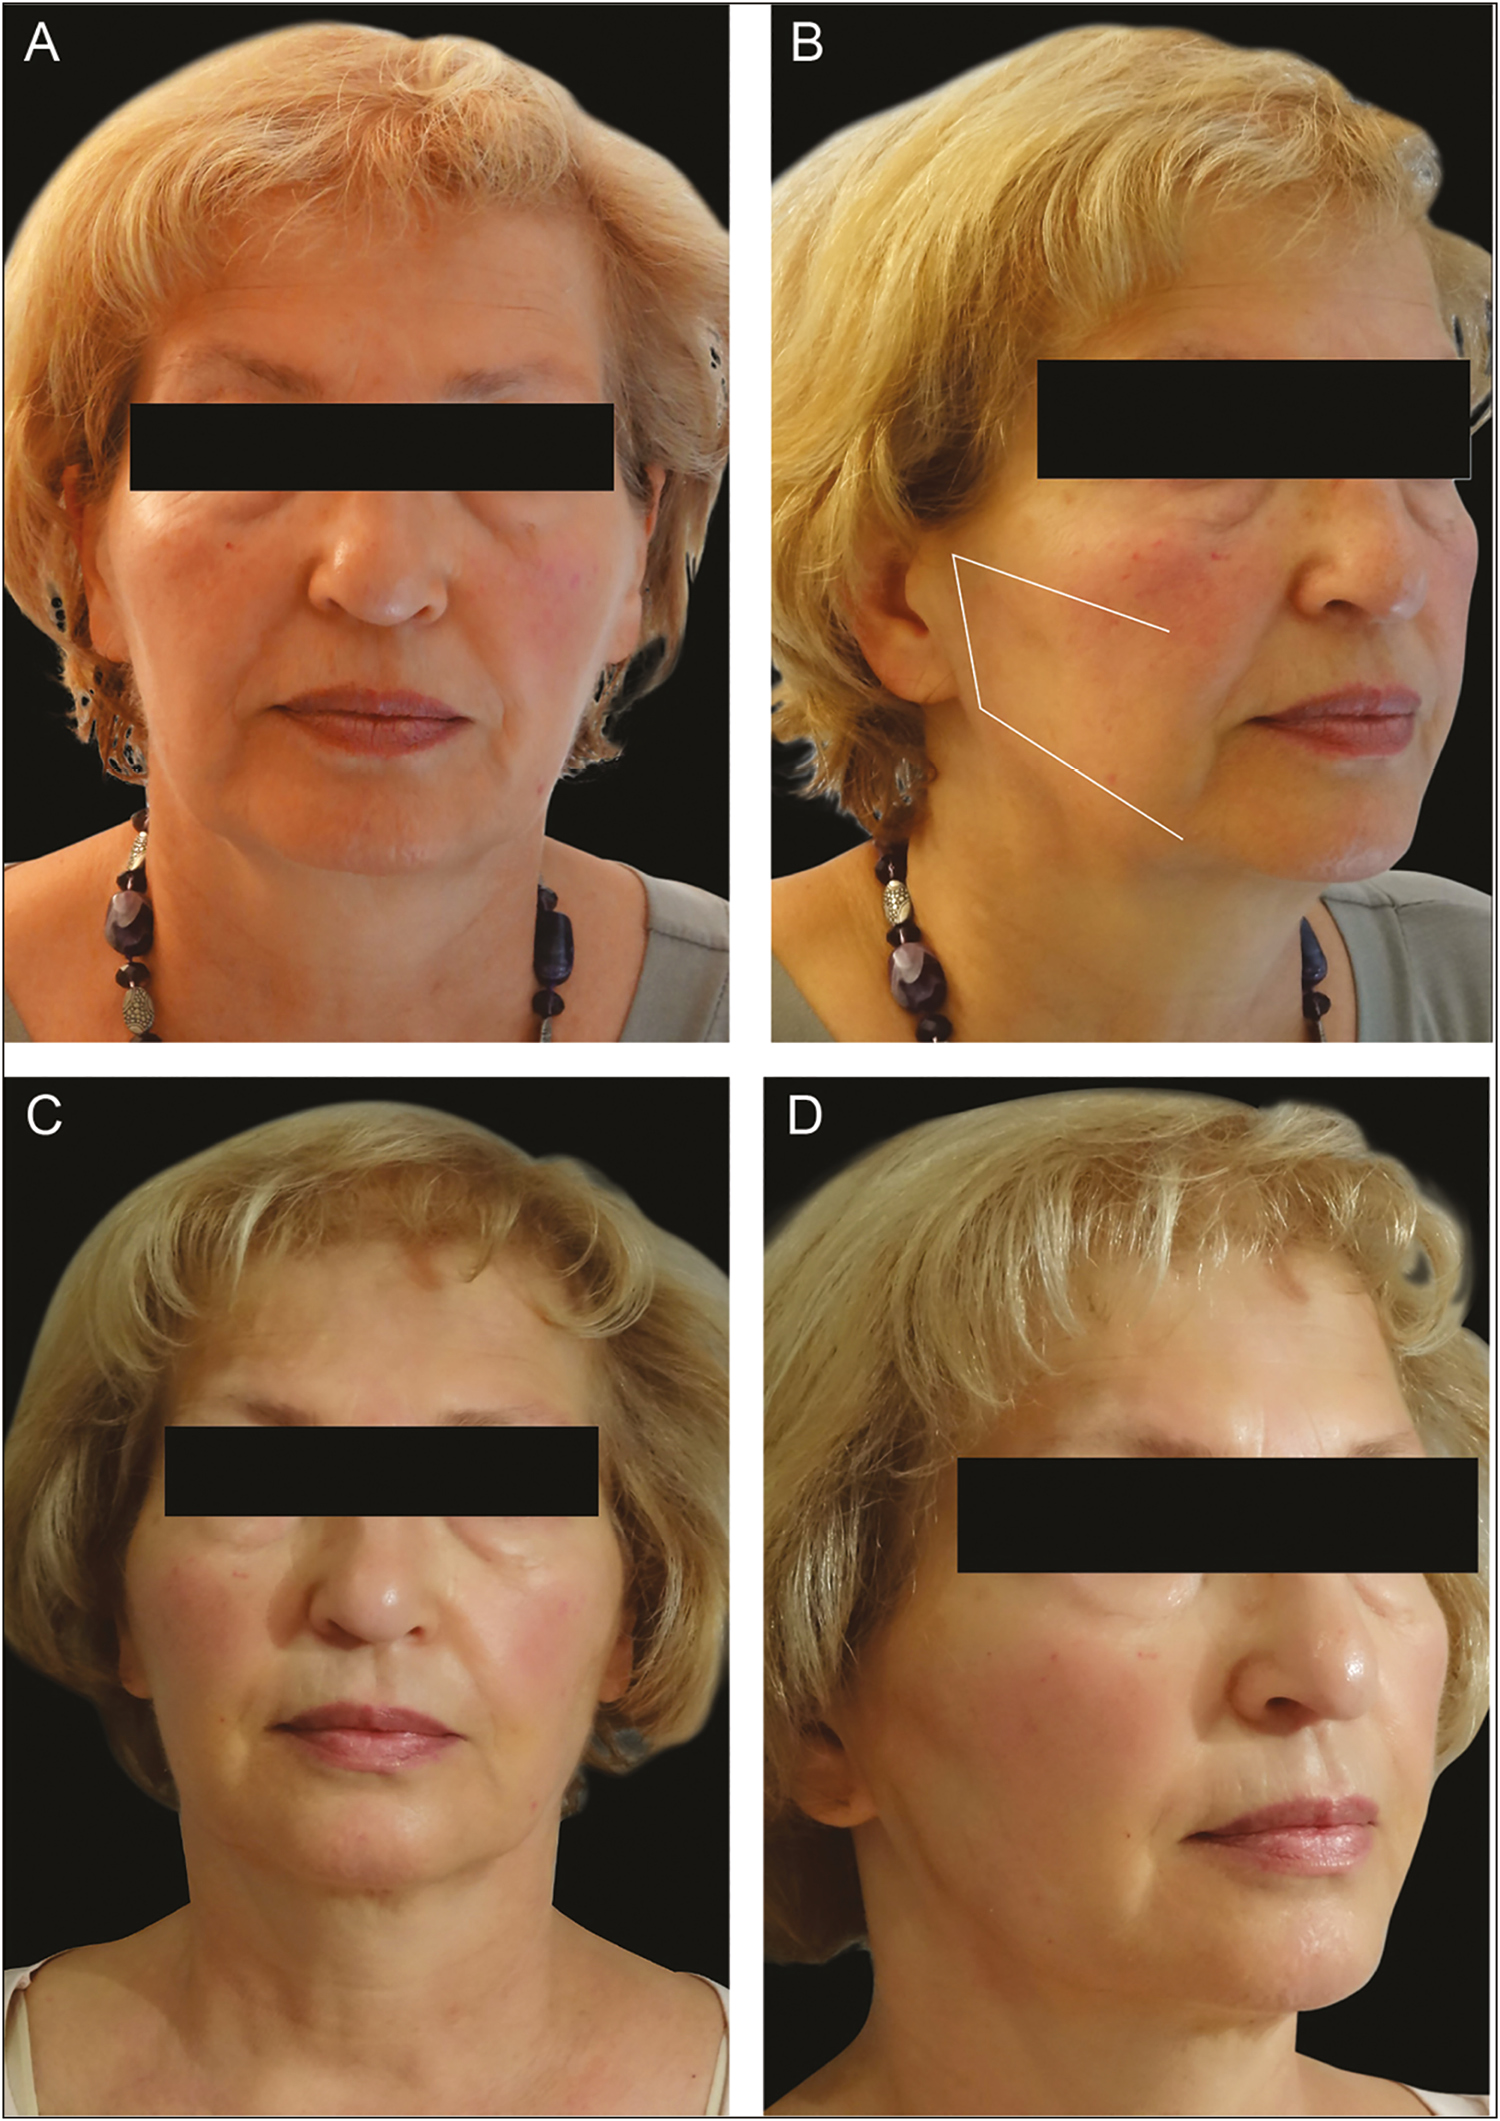 Figure 5: Before and after: The lateral reshaping (LR) technique